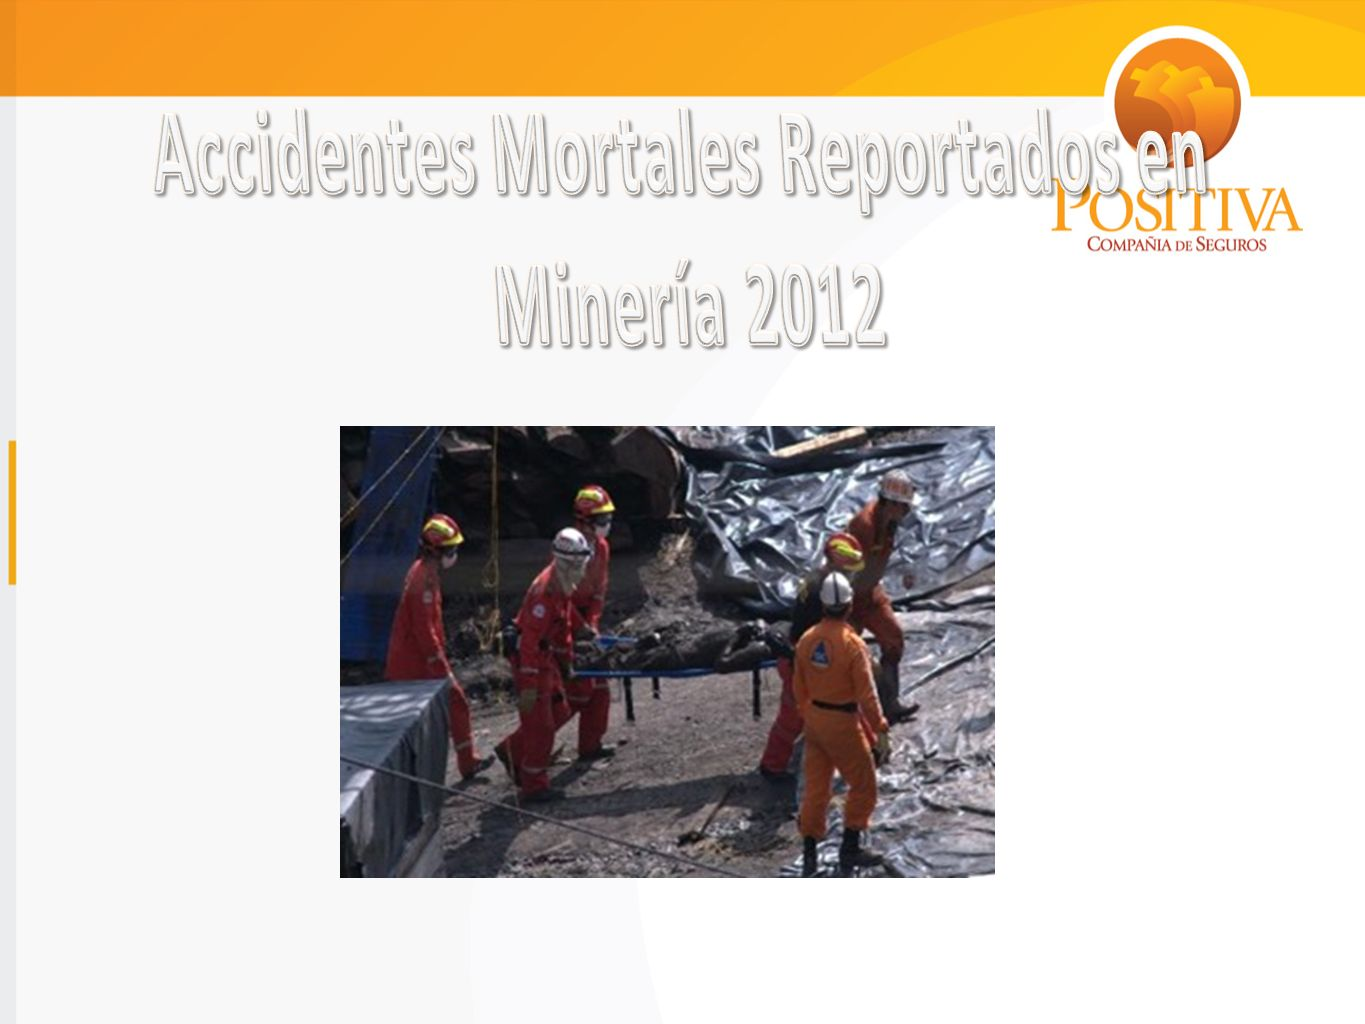 Accidentes Mortales Reportados en